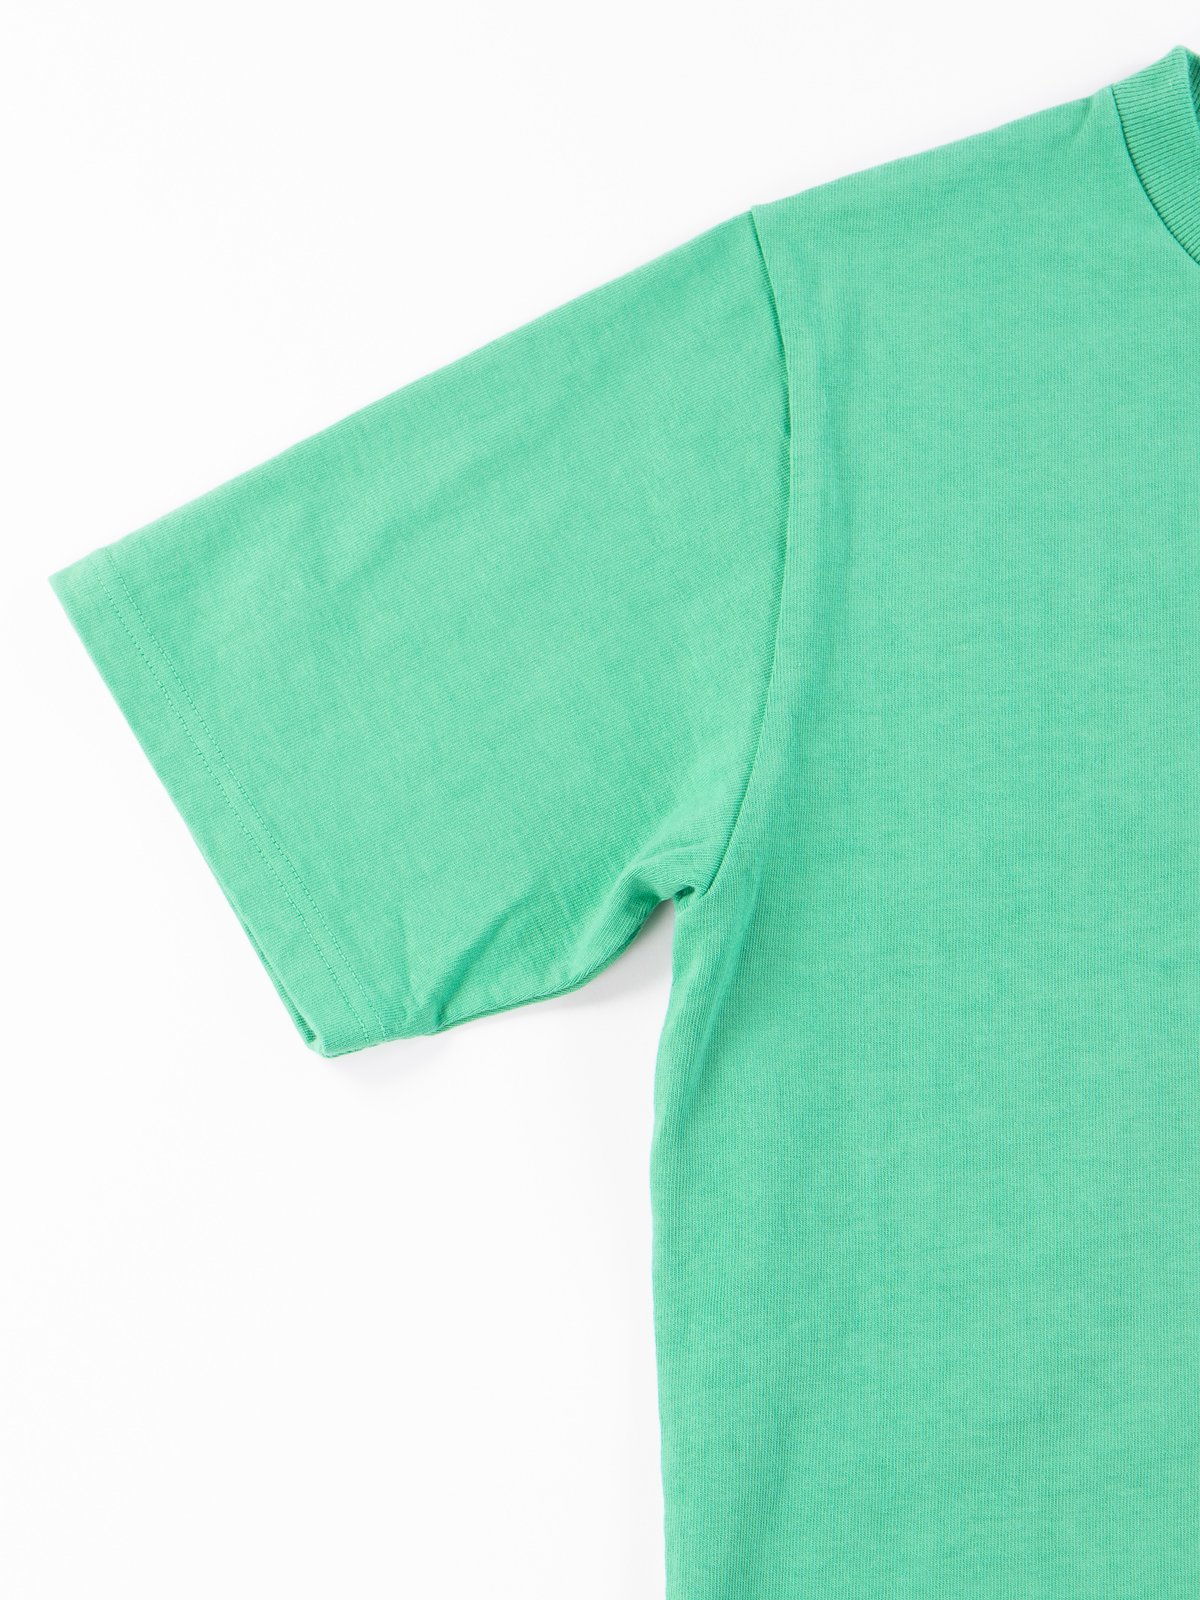 Kelly Green Dotsume Pocket T–Shirt - Image 4